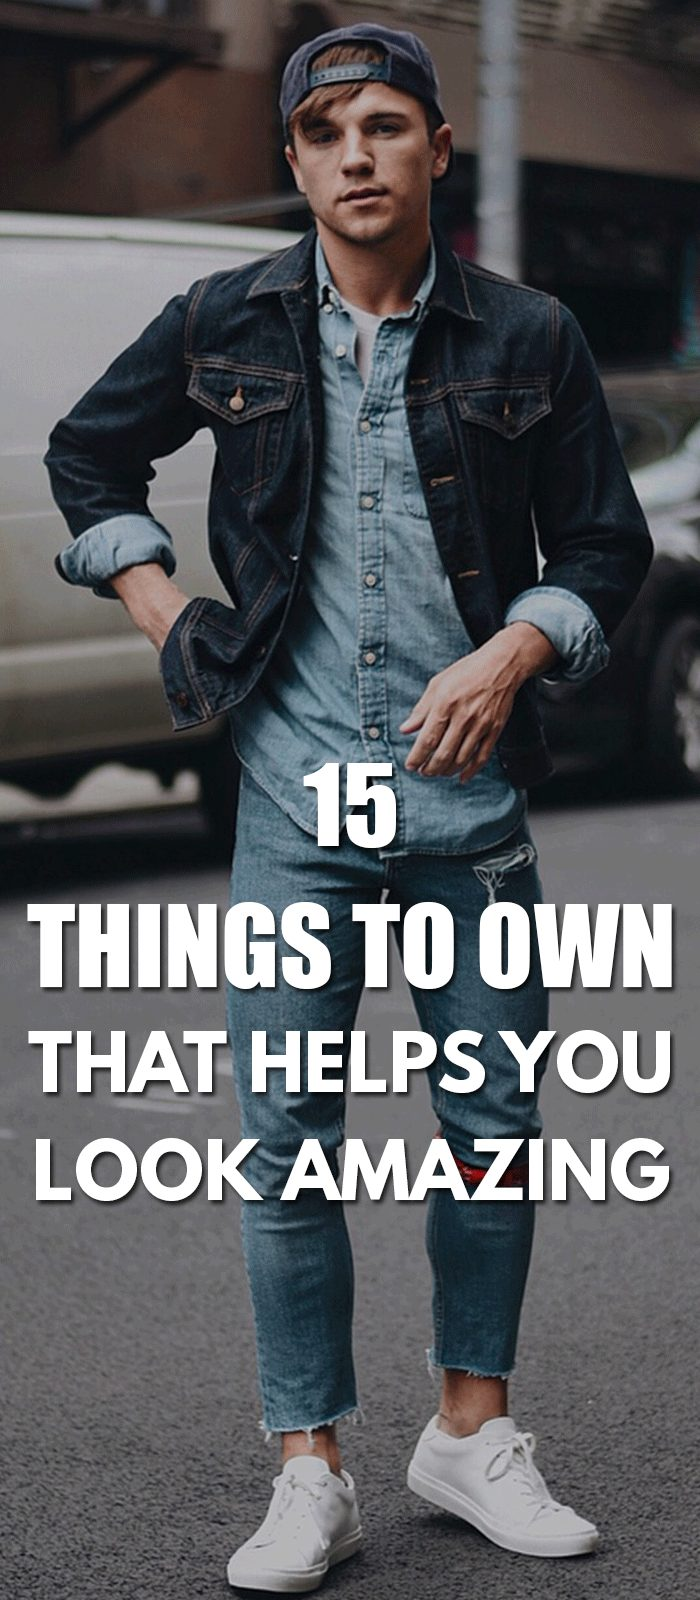 15 Things To Own That Helps You Look Amazing